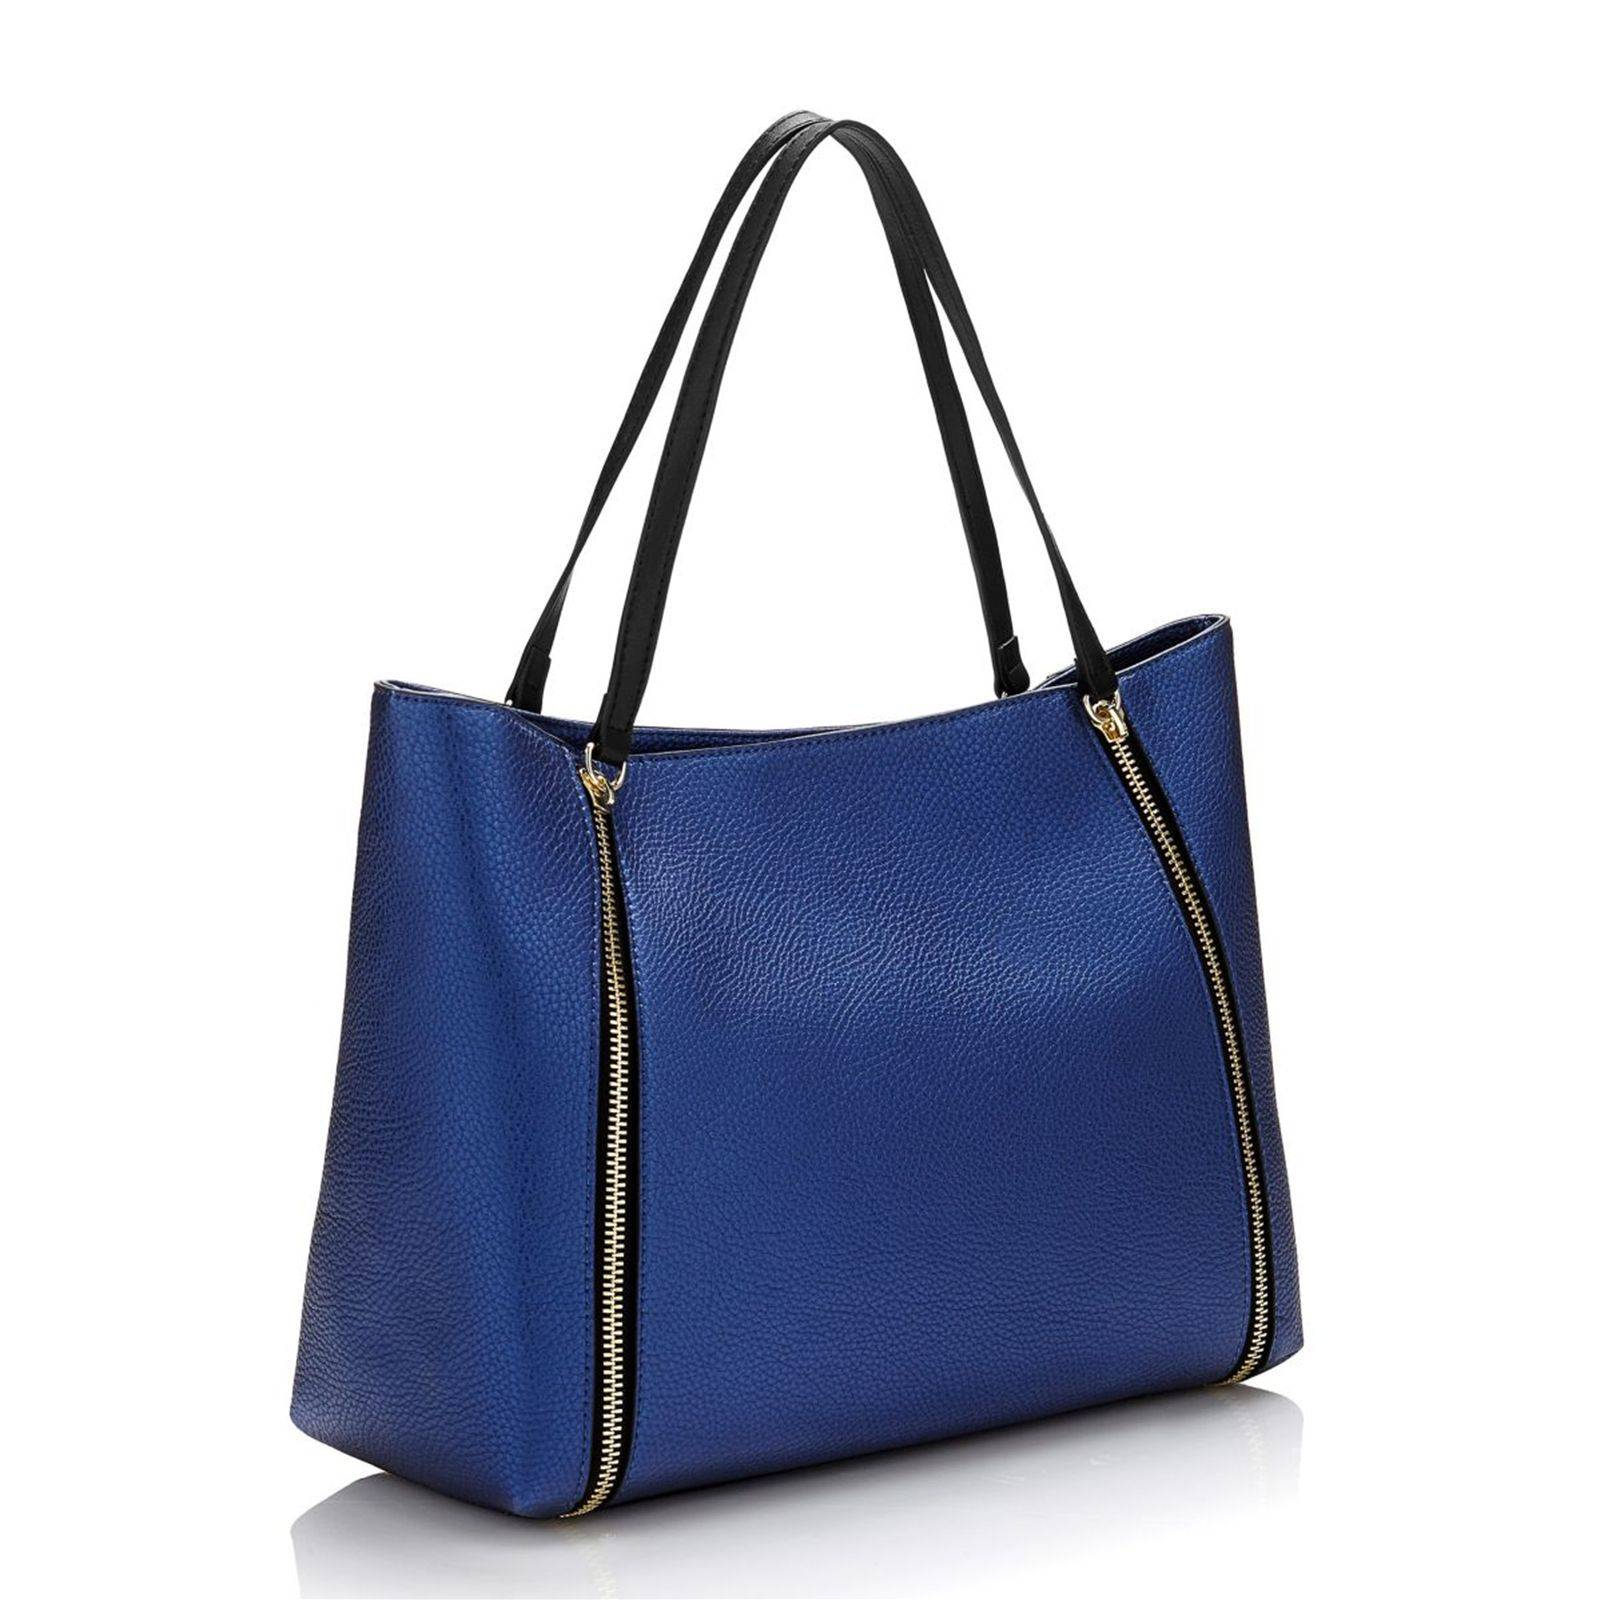 393024b490 Angie Angie Angie Sac Cabas Guess Accompagné D'une Brandalley Bleu Pochette  q1Ytwnv